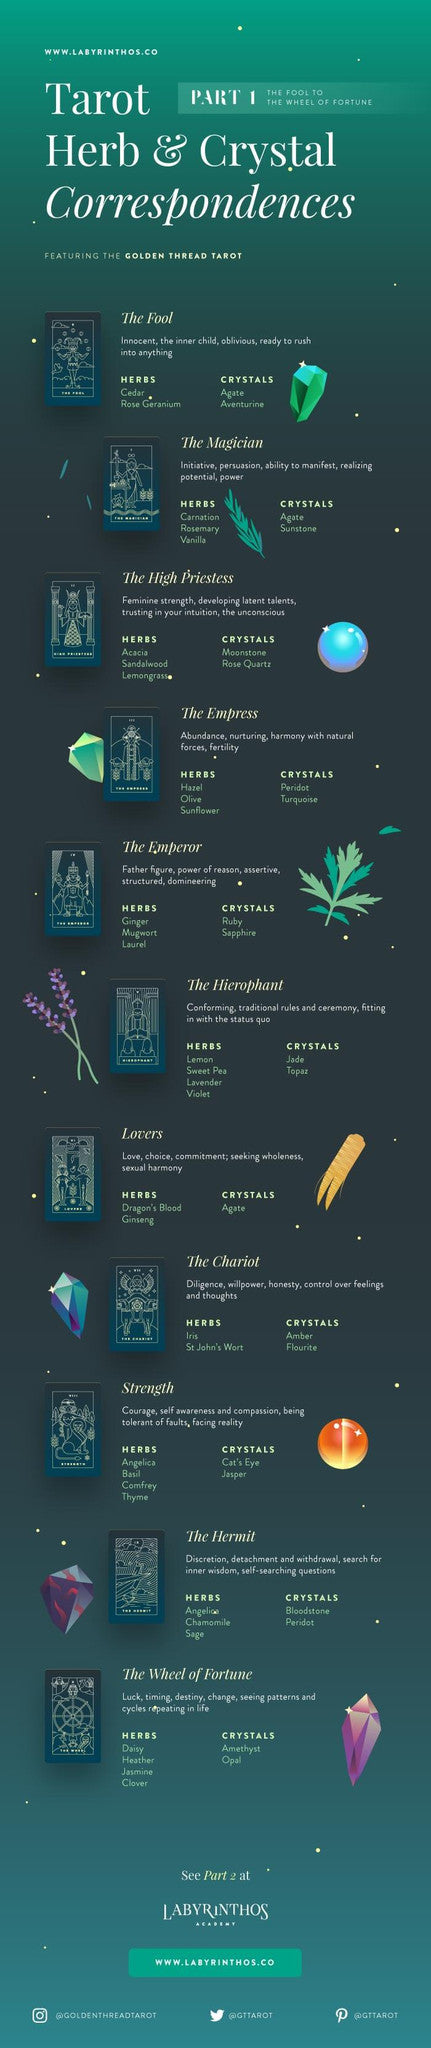 Full Infographic - Crystals, Tarot and Herbal Correspondences Chart - Part 1: From the Fool to the Wheel of Fortune